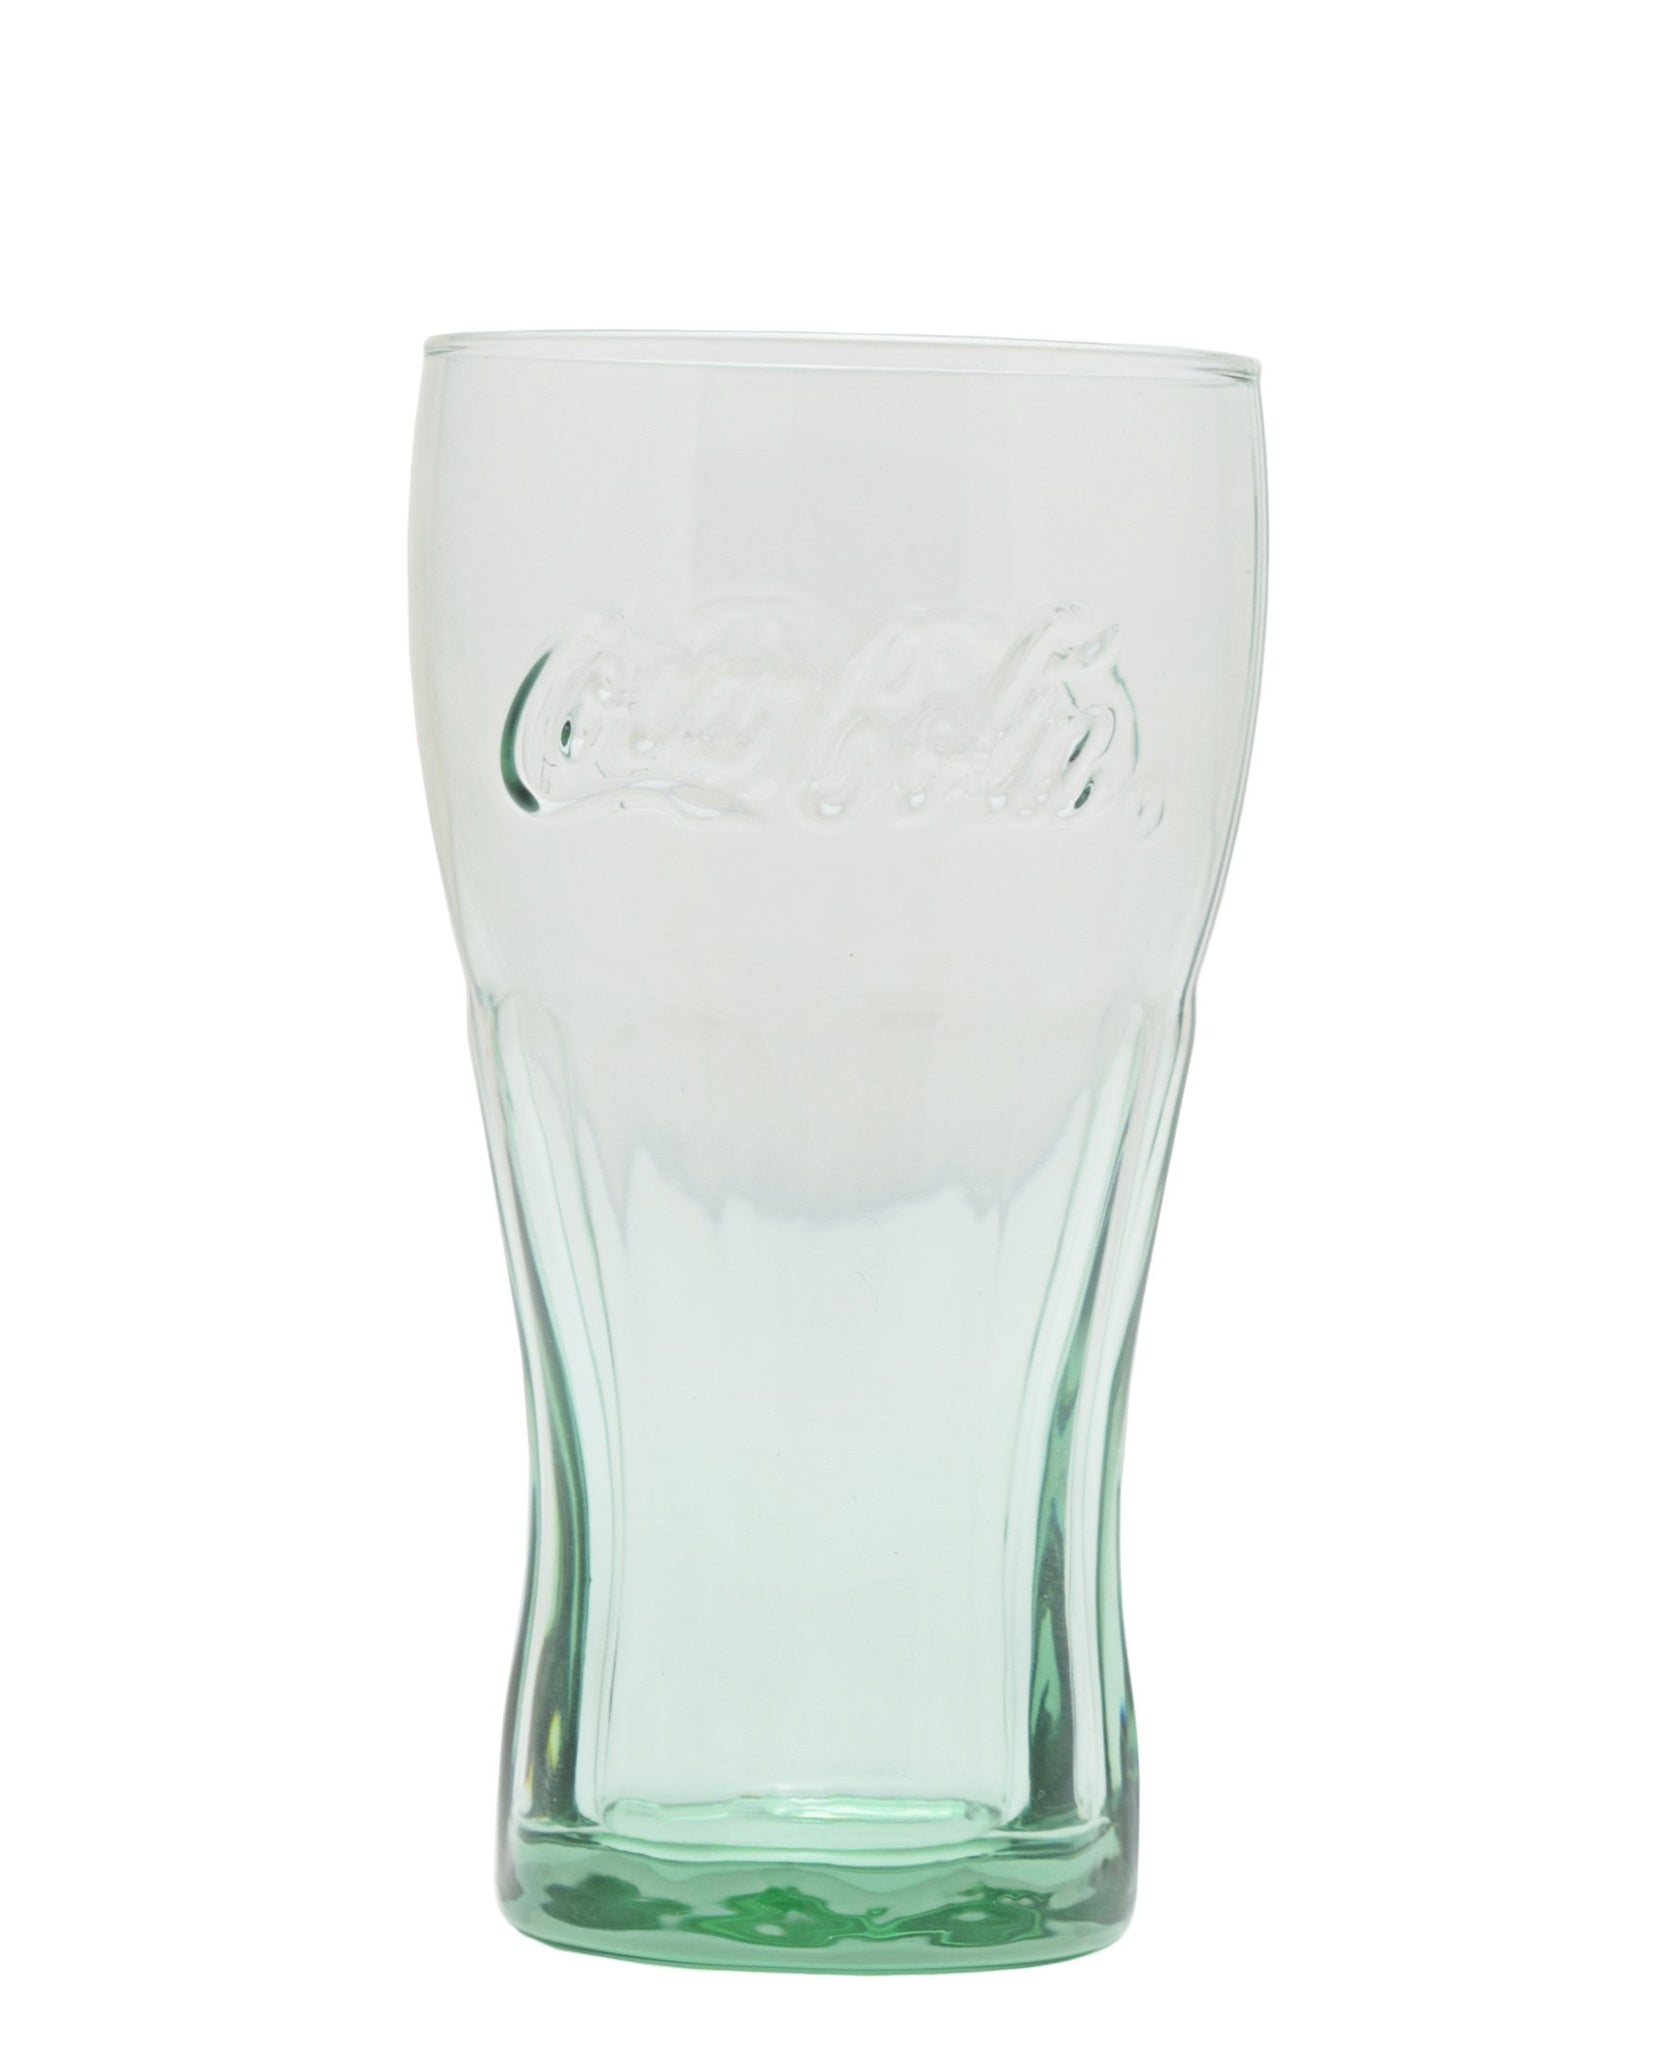 Pasabahce Coca Cola Tumbler 5 Piece - Clear & Green